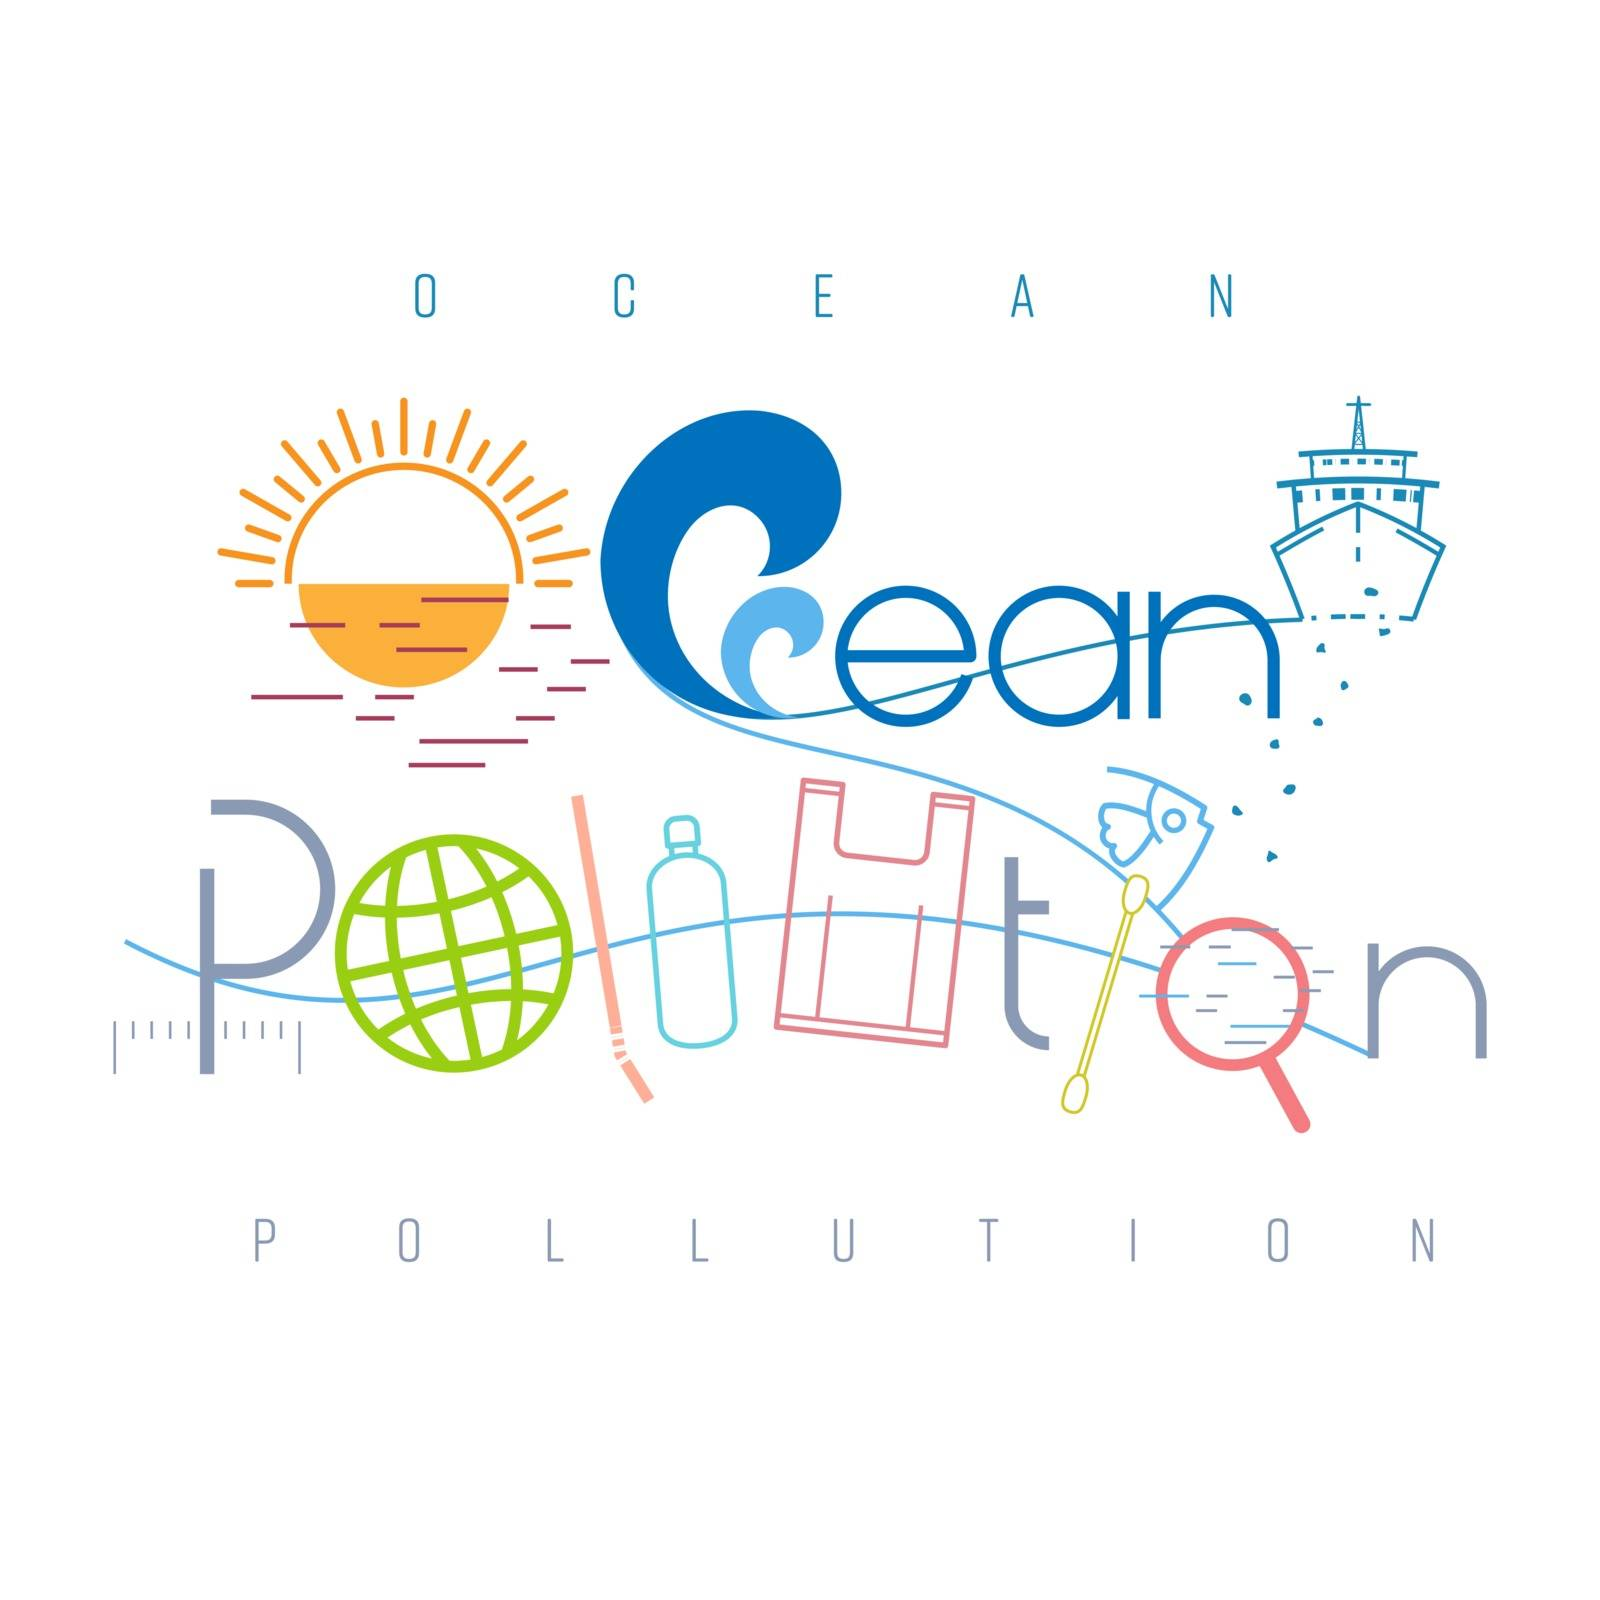 Ocean pollution typographic design. Pictorial symbol. Single-use plastic waste, oil and chemical causing ocean pollution presented in pictorial form. Vector illustration outline flat design style.